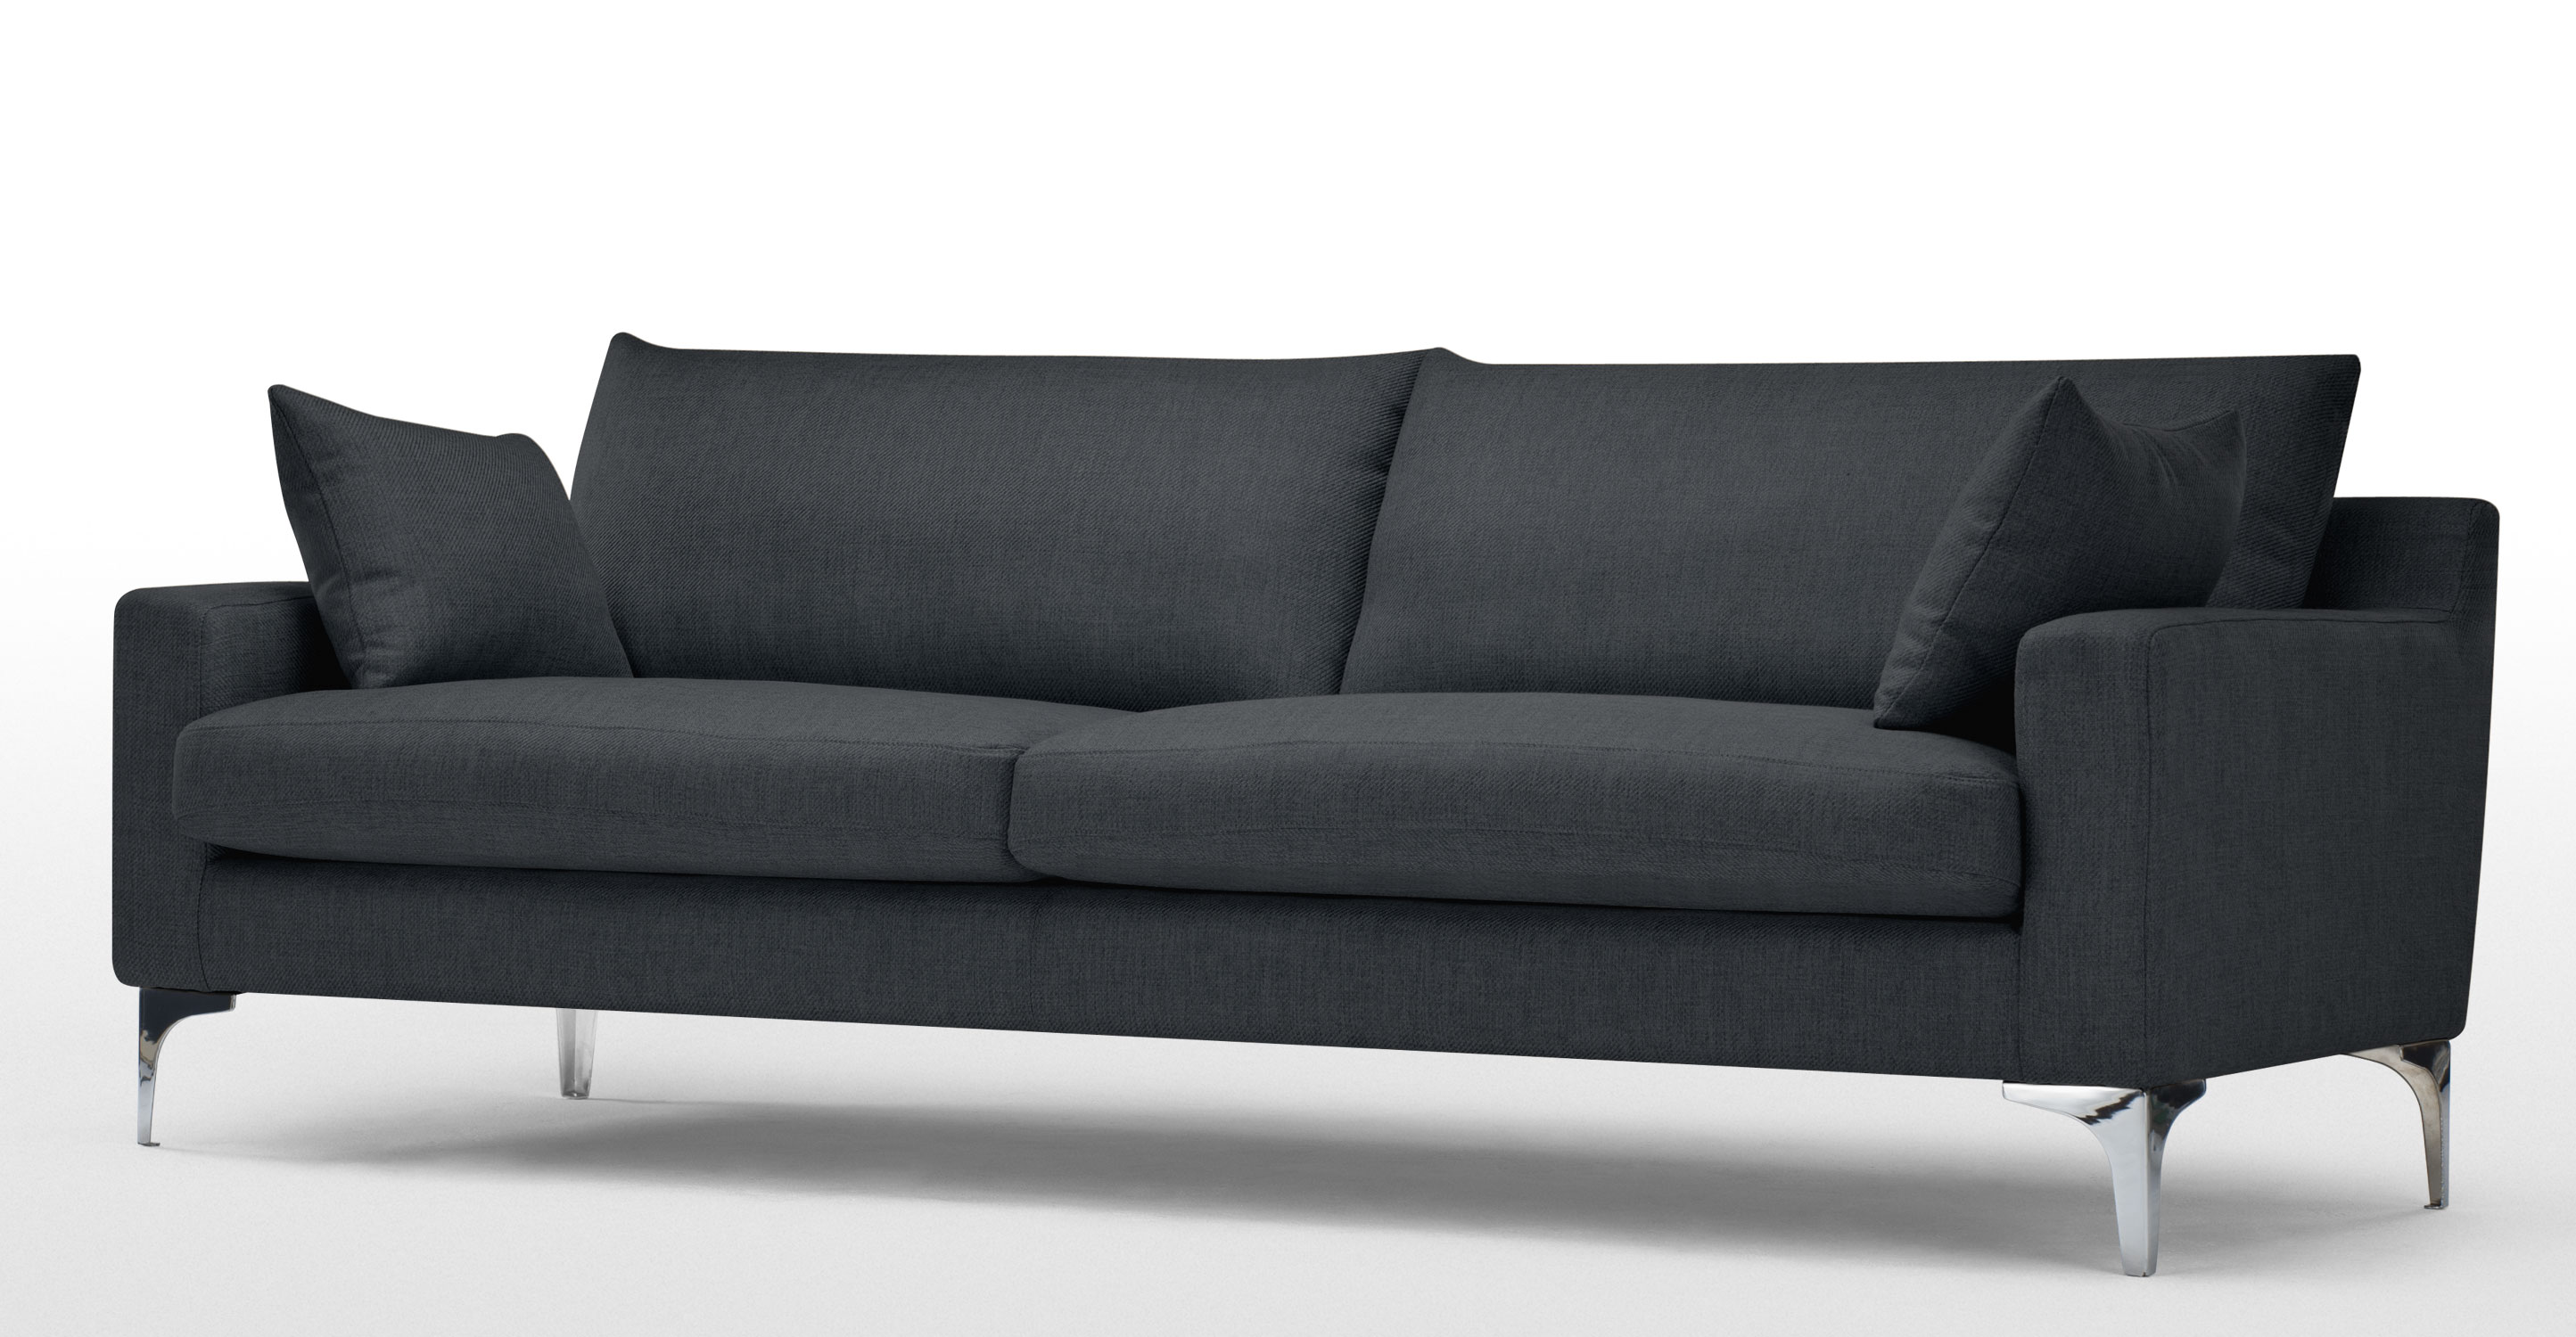 mendini 3 seater sofa in anthracite grey. Black Bedroom Furniture Sets. Home Design Ideas